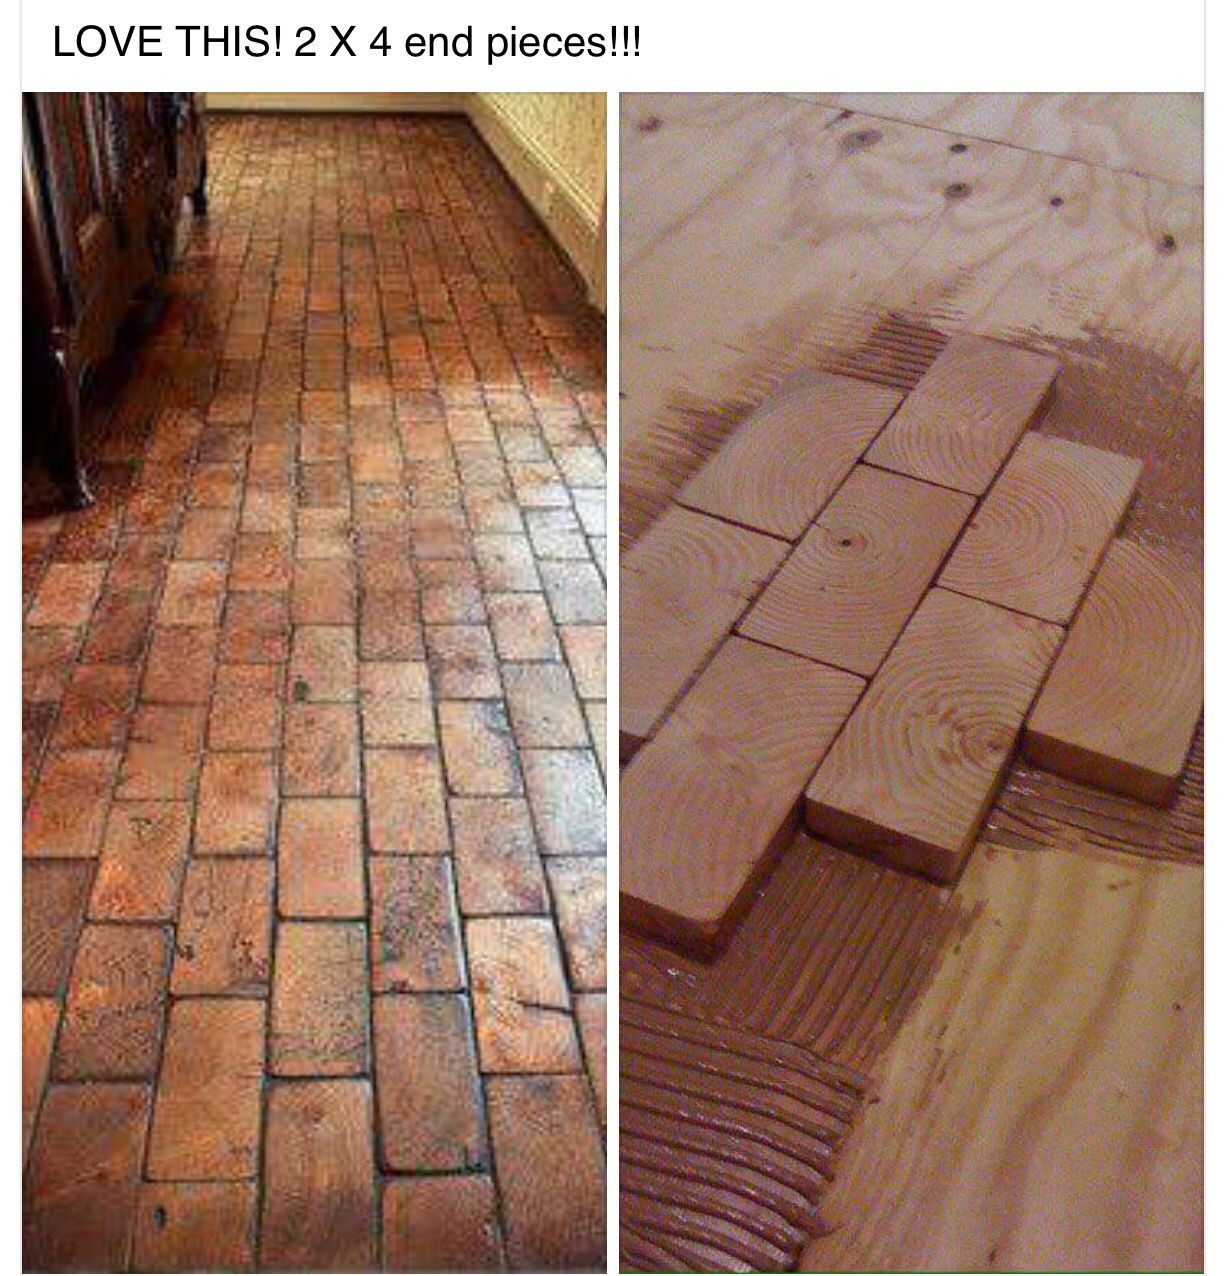 how to sand and refinish hardwood floors yourself of 2x4 faux brick floor with wood blocks wooden blocks for fake brick pertaining to 2x4 faux brick floor with wood blocks wooden blocks for fake brick flooring awesome diy